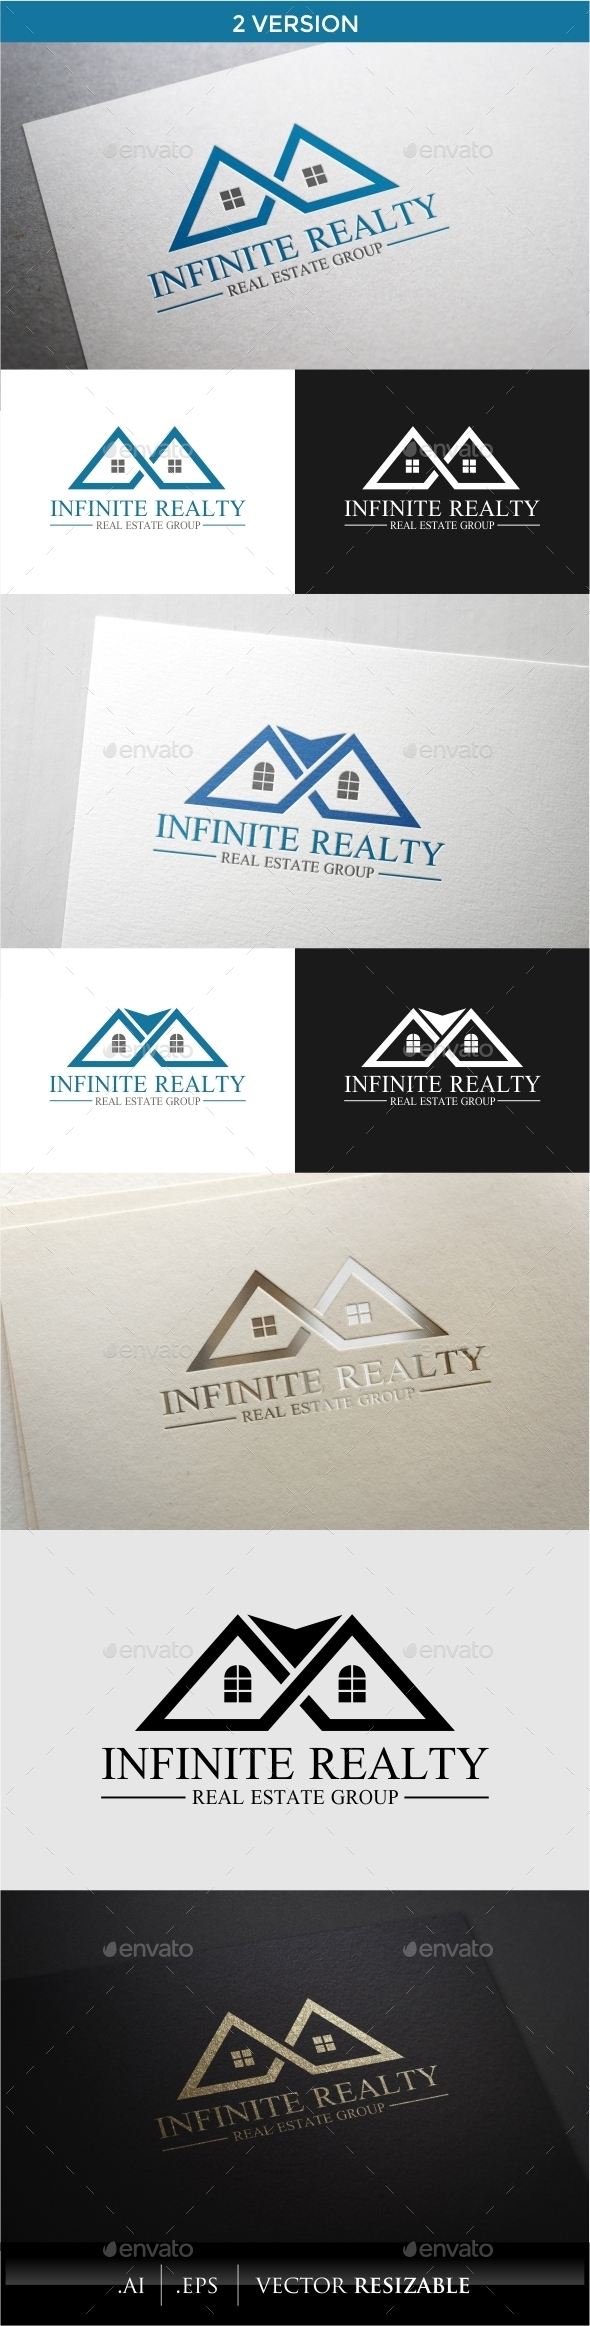 GraphicRiver Infinite Realty Logo 10049547